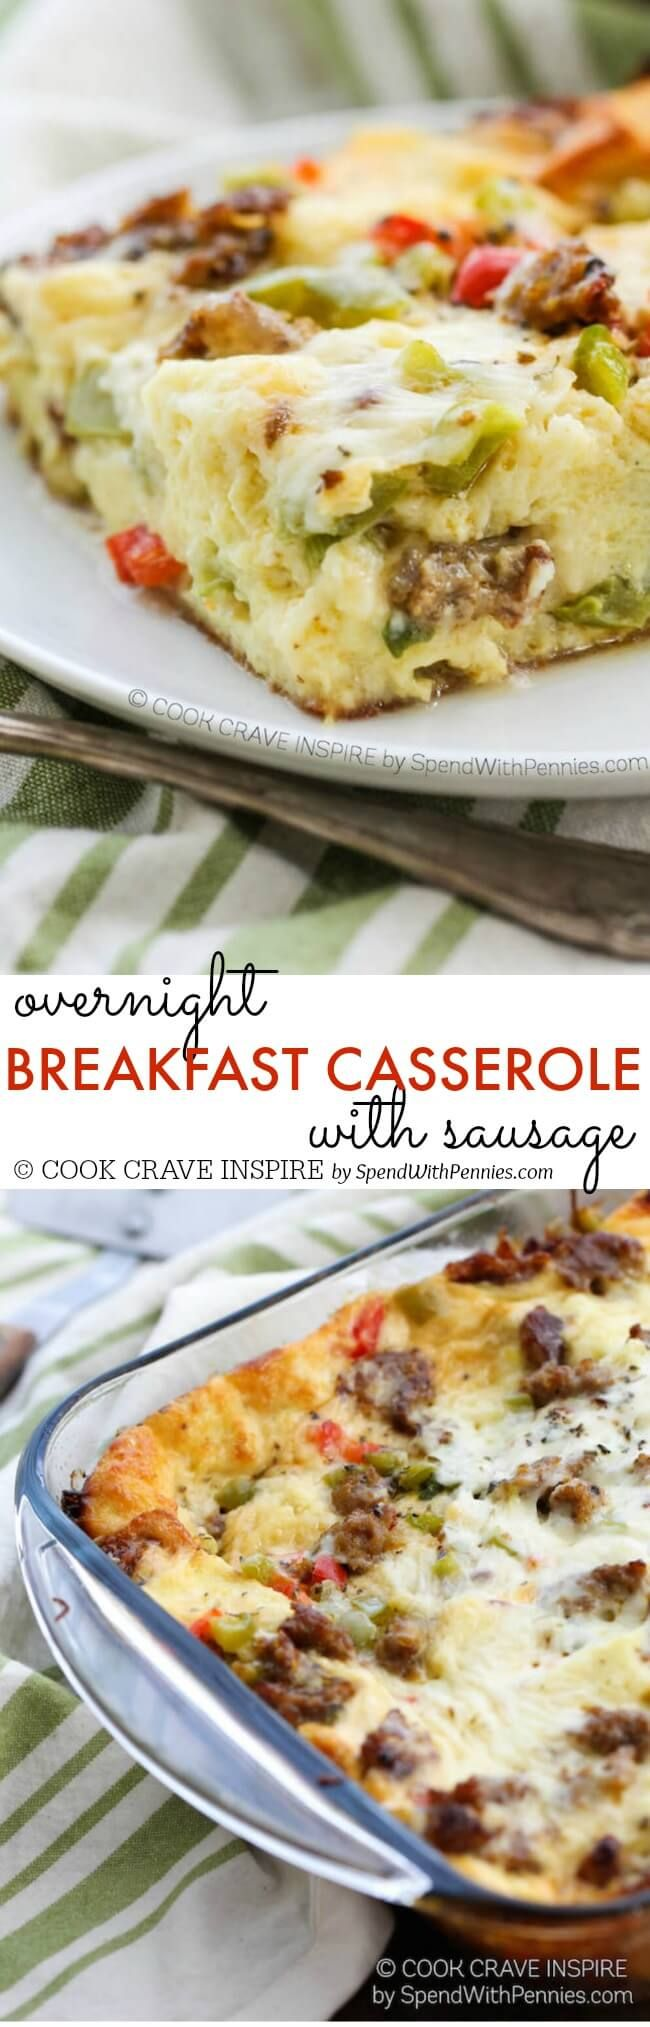 This Overnight Breakfast Casserole with sausage, peppers, italian seasoning and cheese is the perfect make ahead breakfast idea! Easy to make & delicious! #easybreakfast #ad